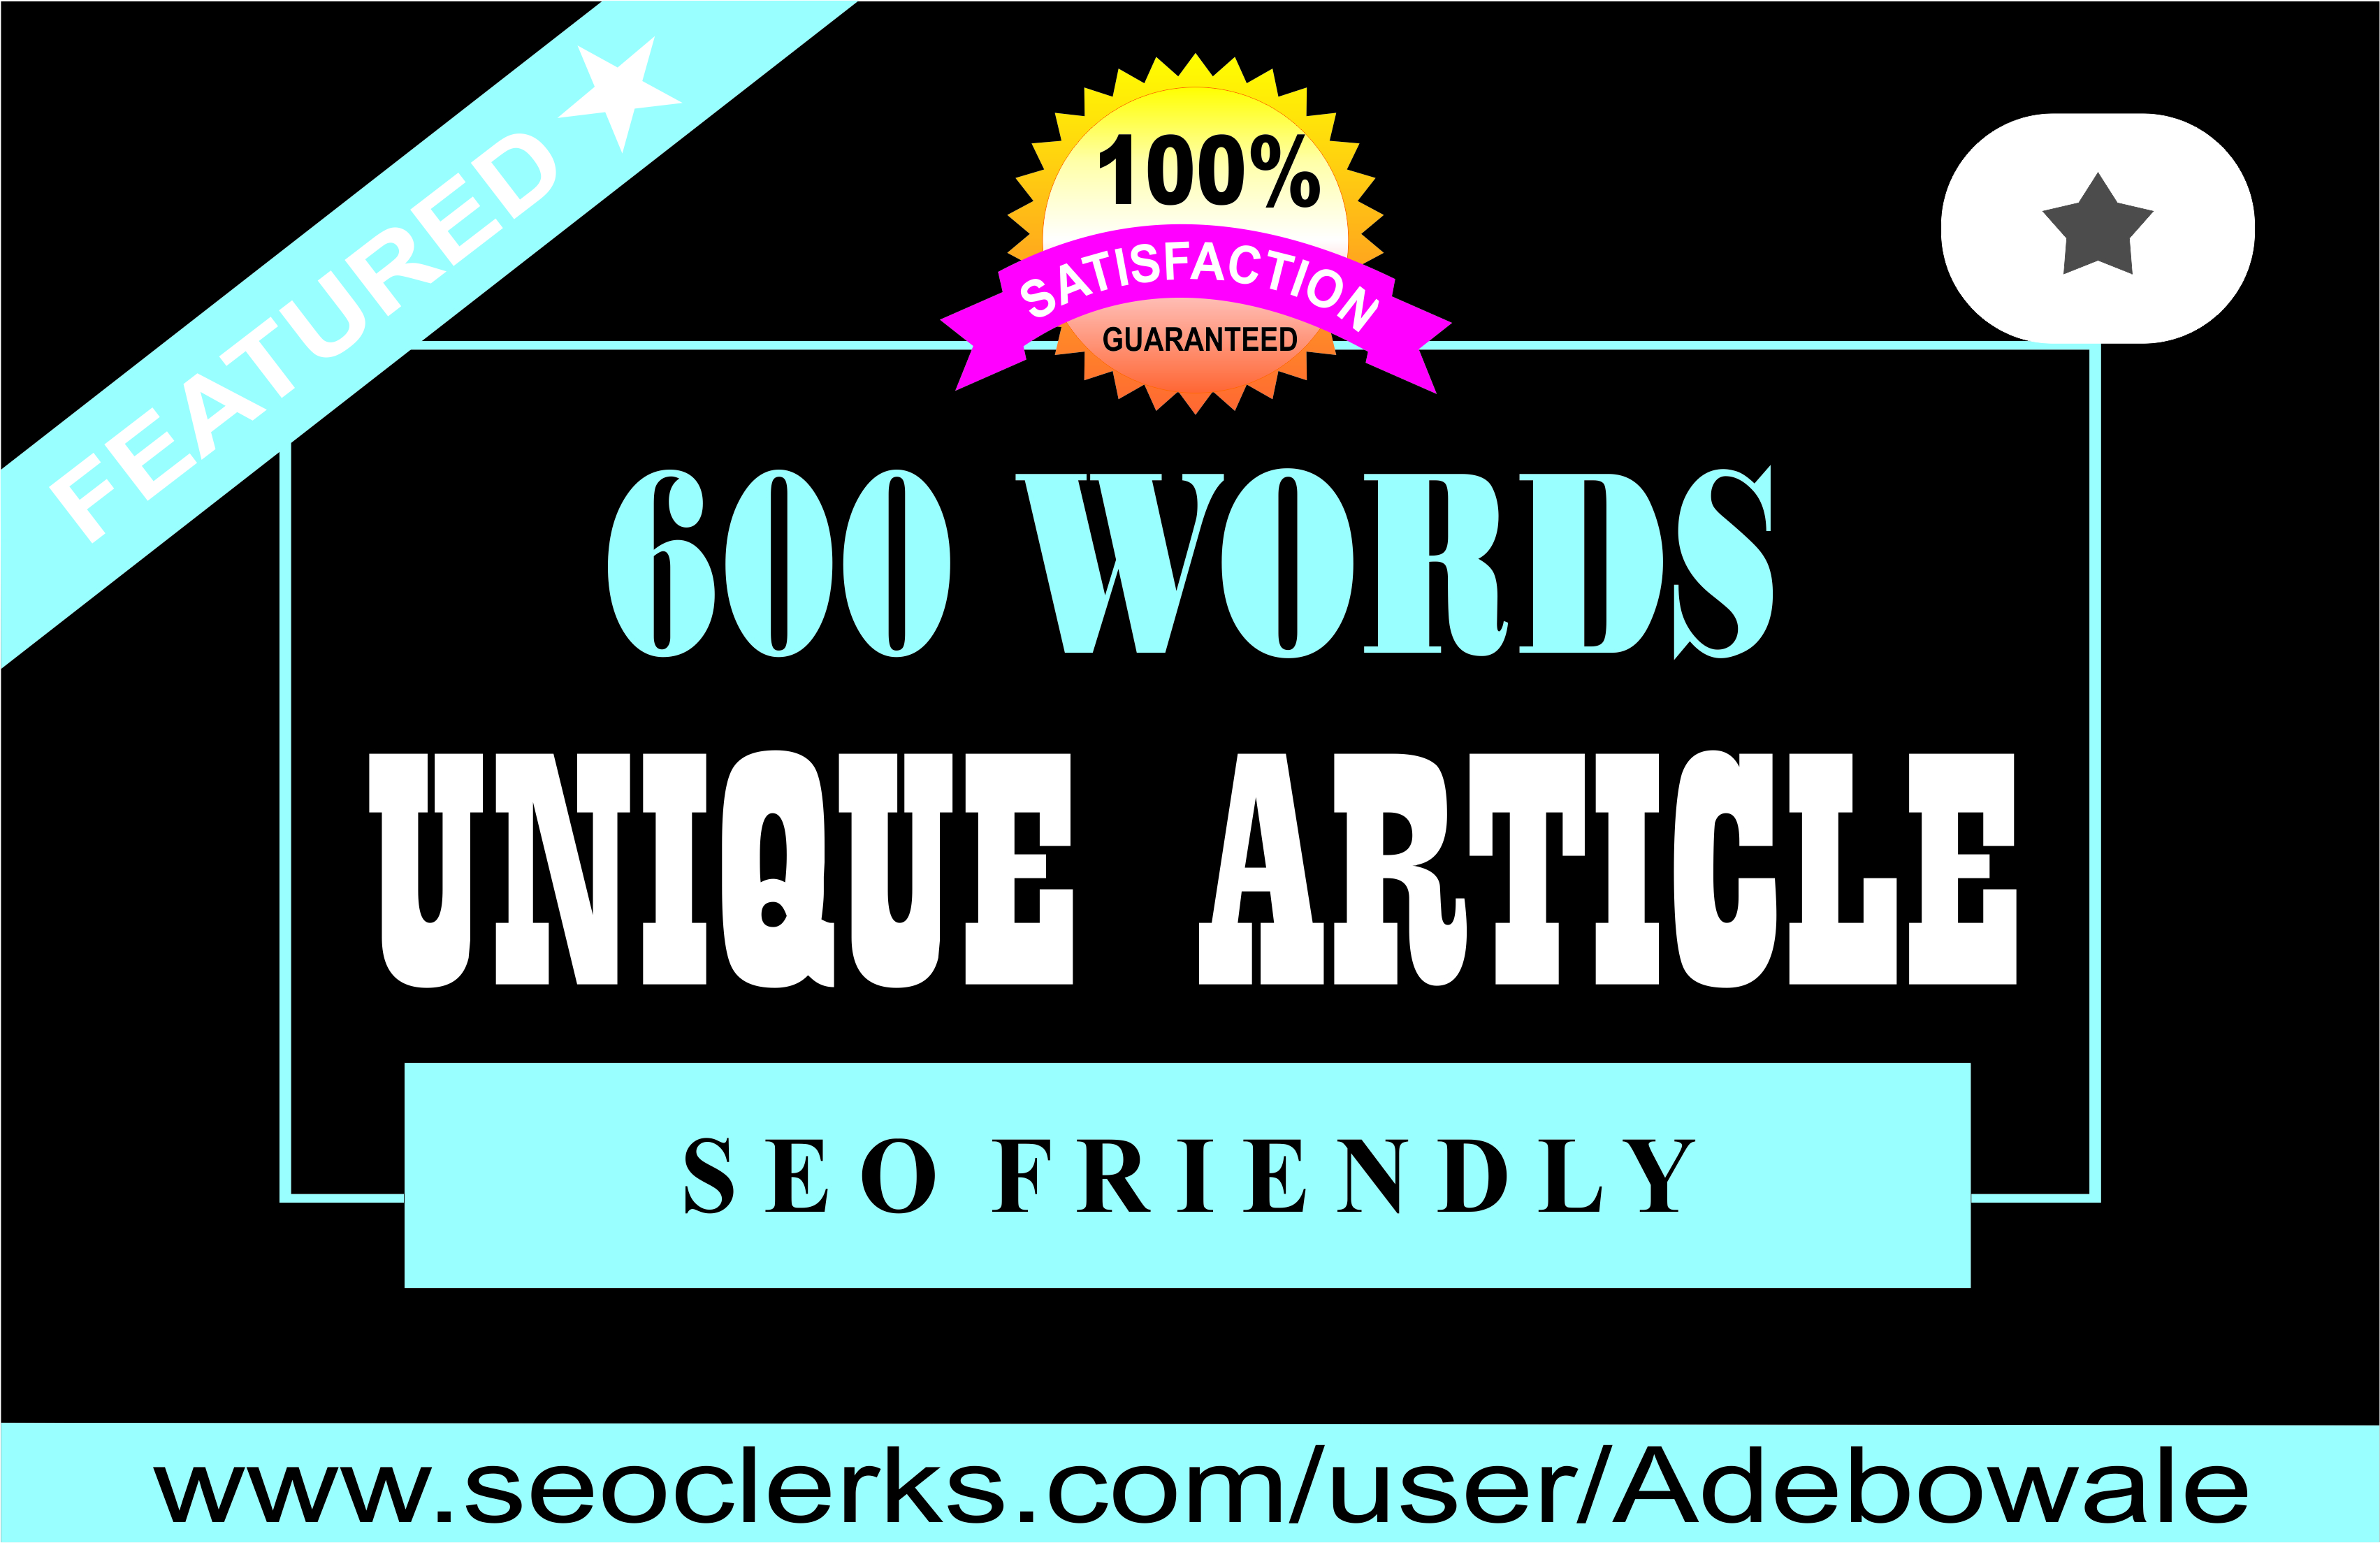 Professional 600 words SEO optimized Article Writing / Content Writing for your website/blog